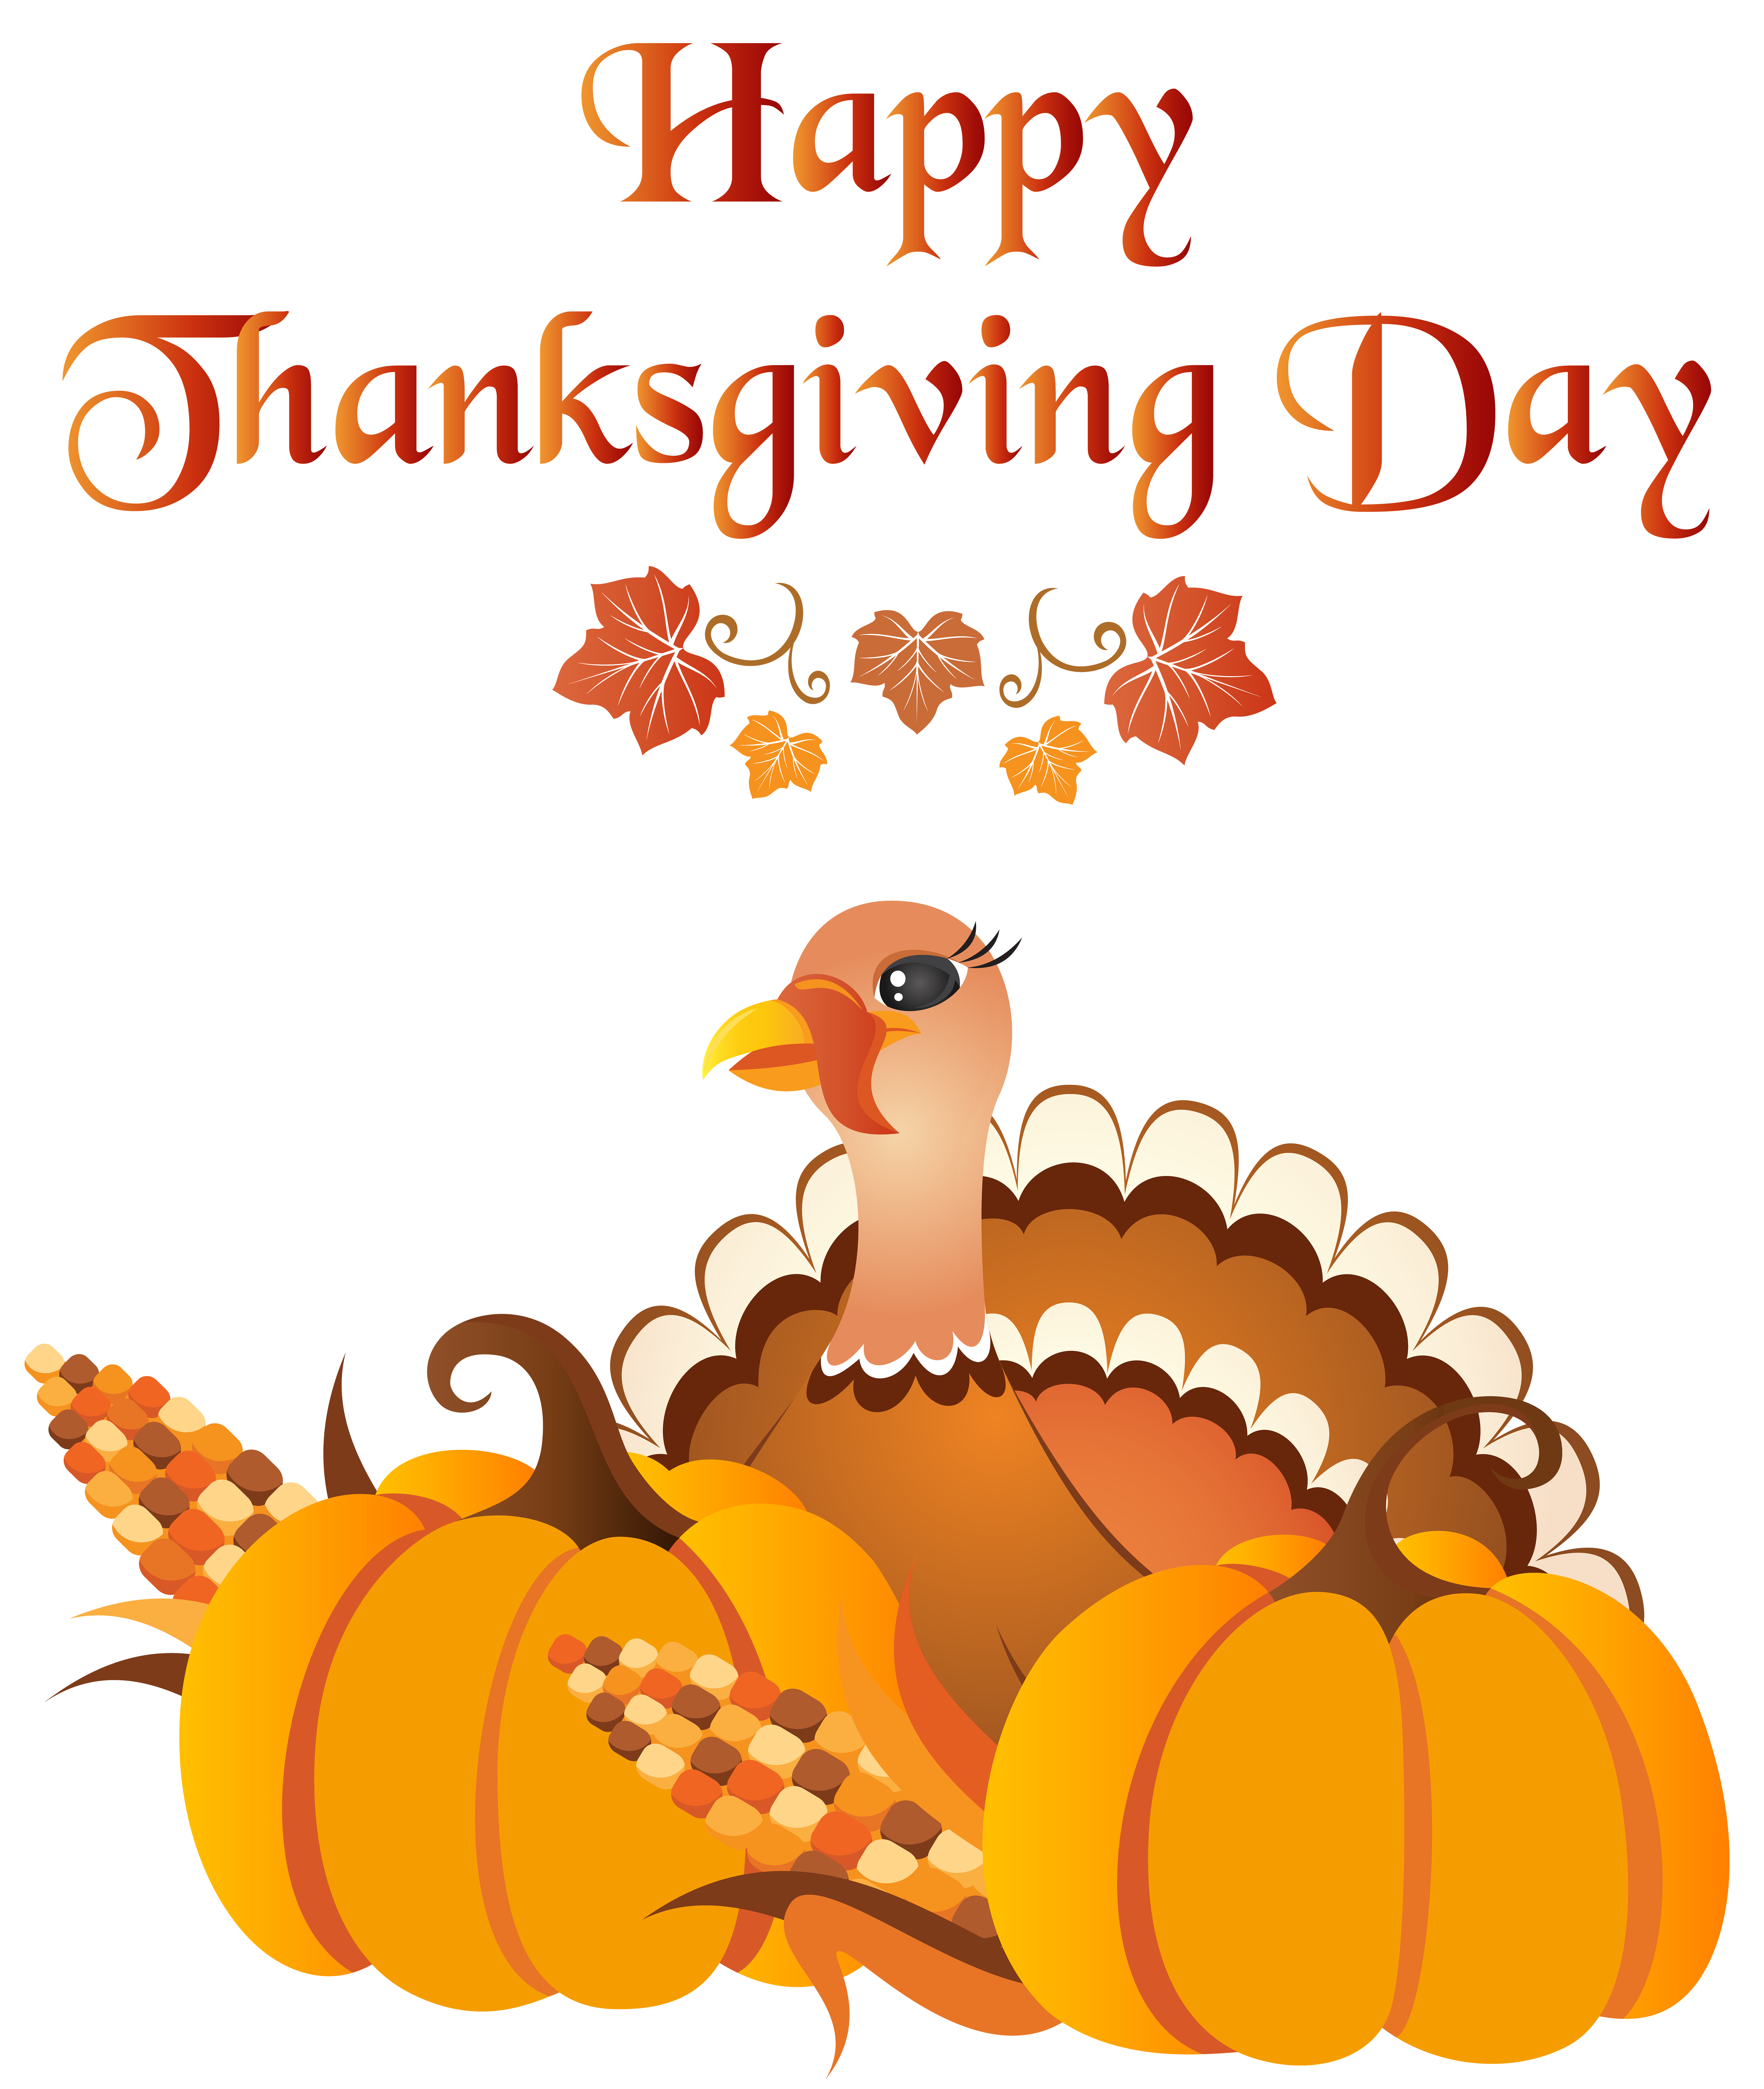 After thanksgiving day clipart image royalty free stock Happy Thanksgiving Day with Turkey PNG Clip Art Image | Gallery ... image royalty free stock